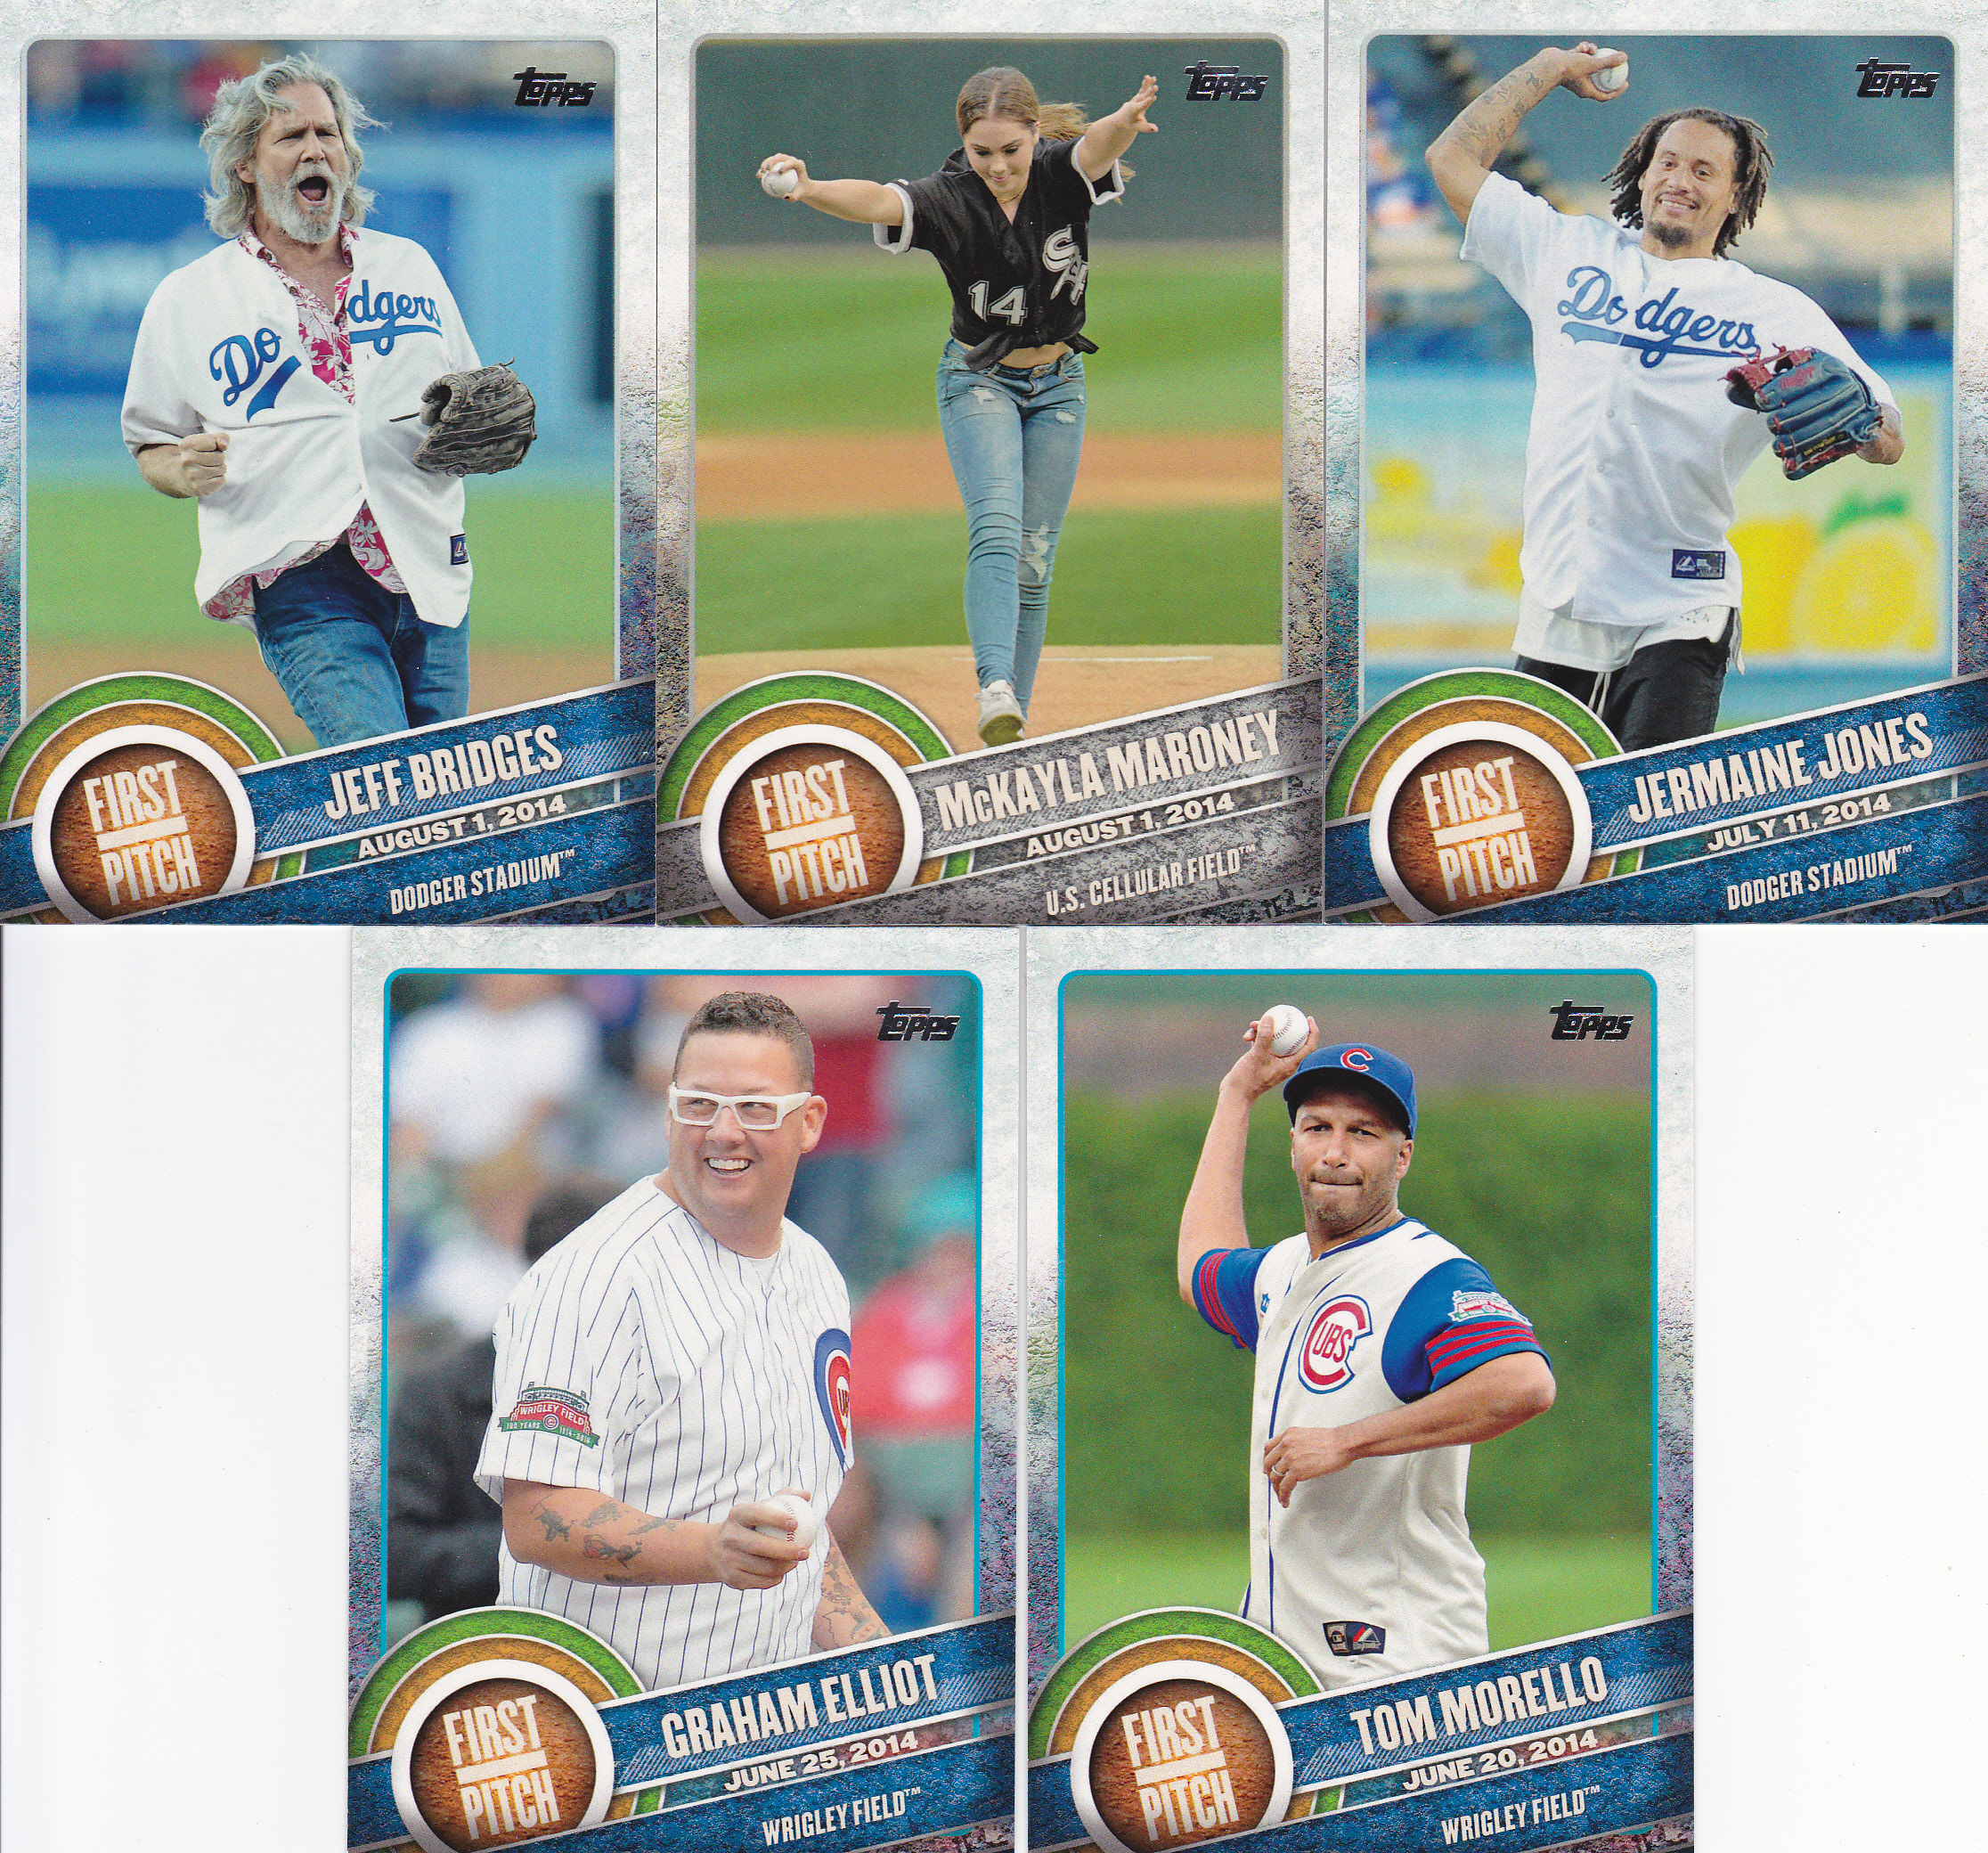 March 2015 Lifetime Topps Project